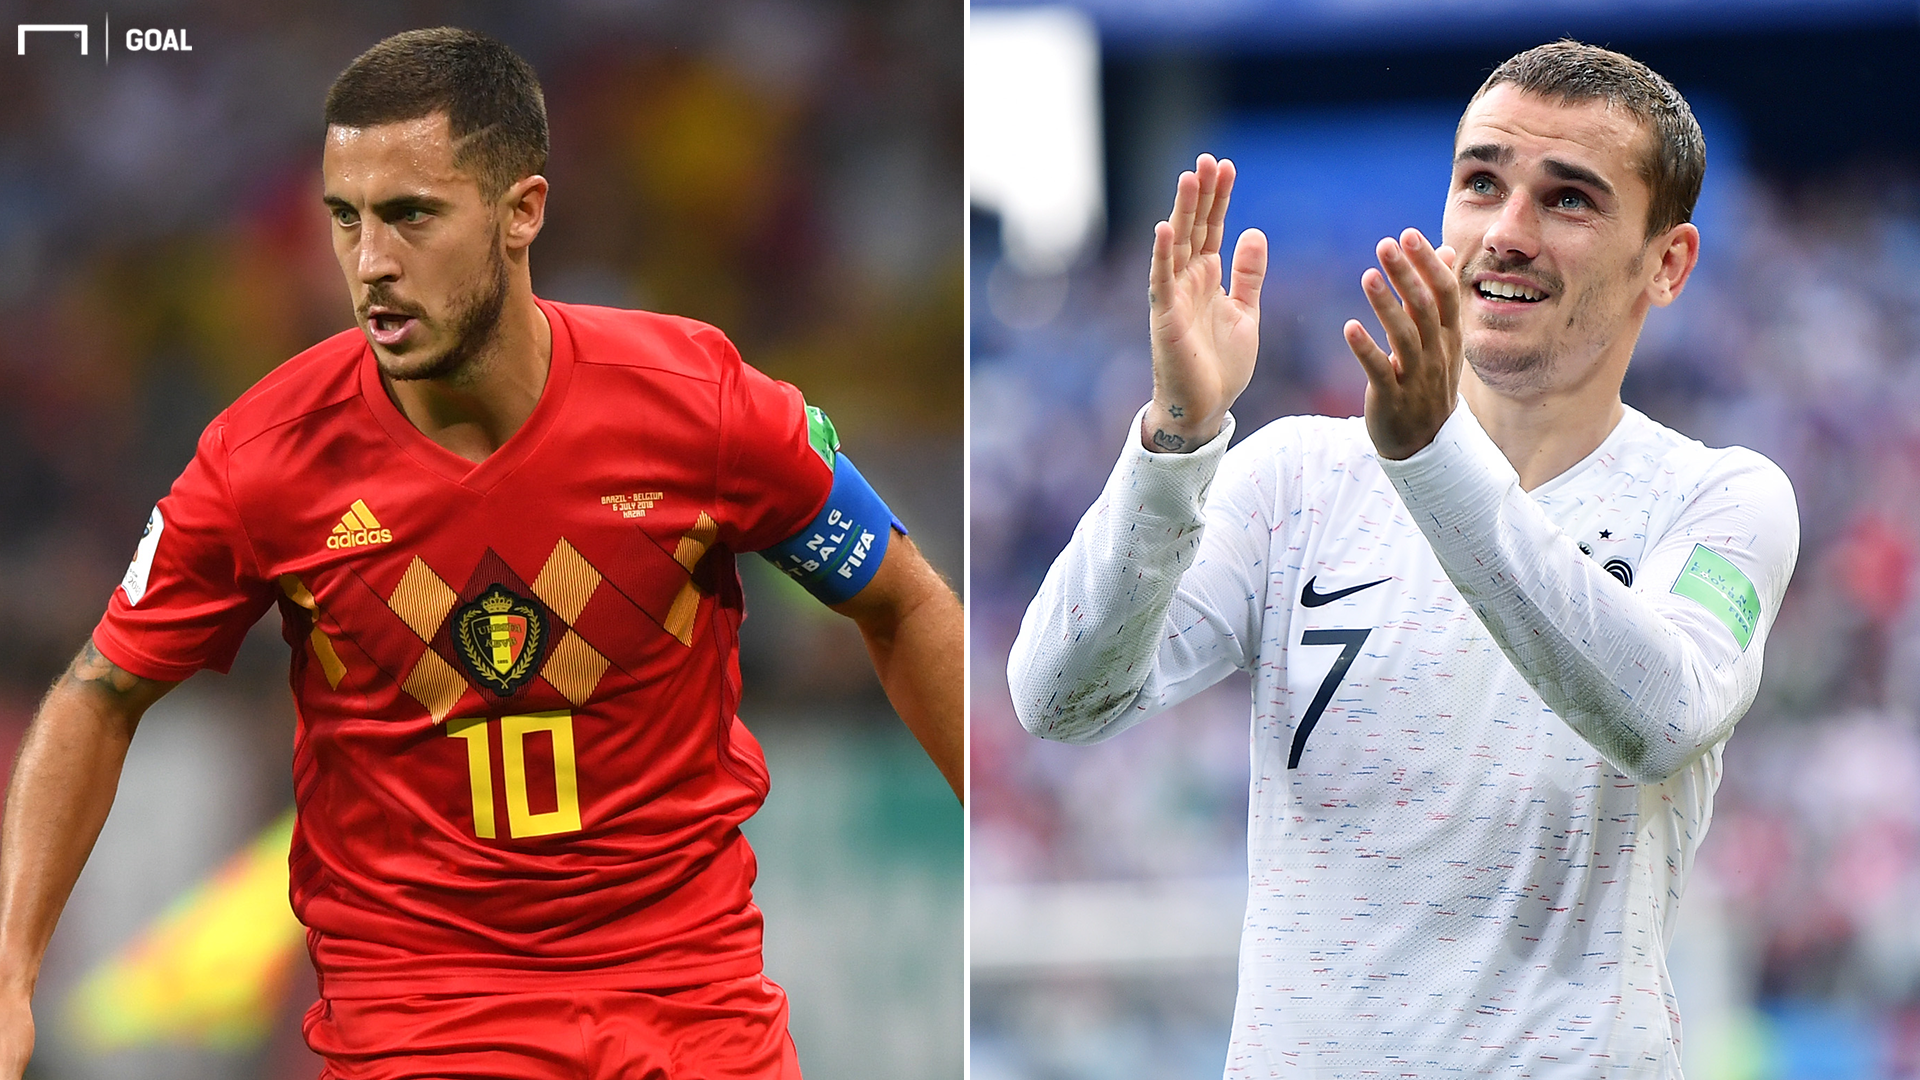 Belgium and France face off in mouth-watering semi-final